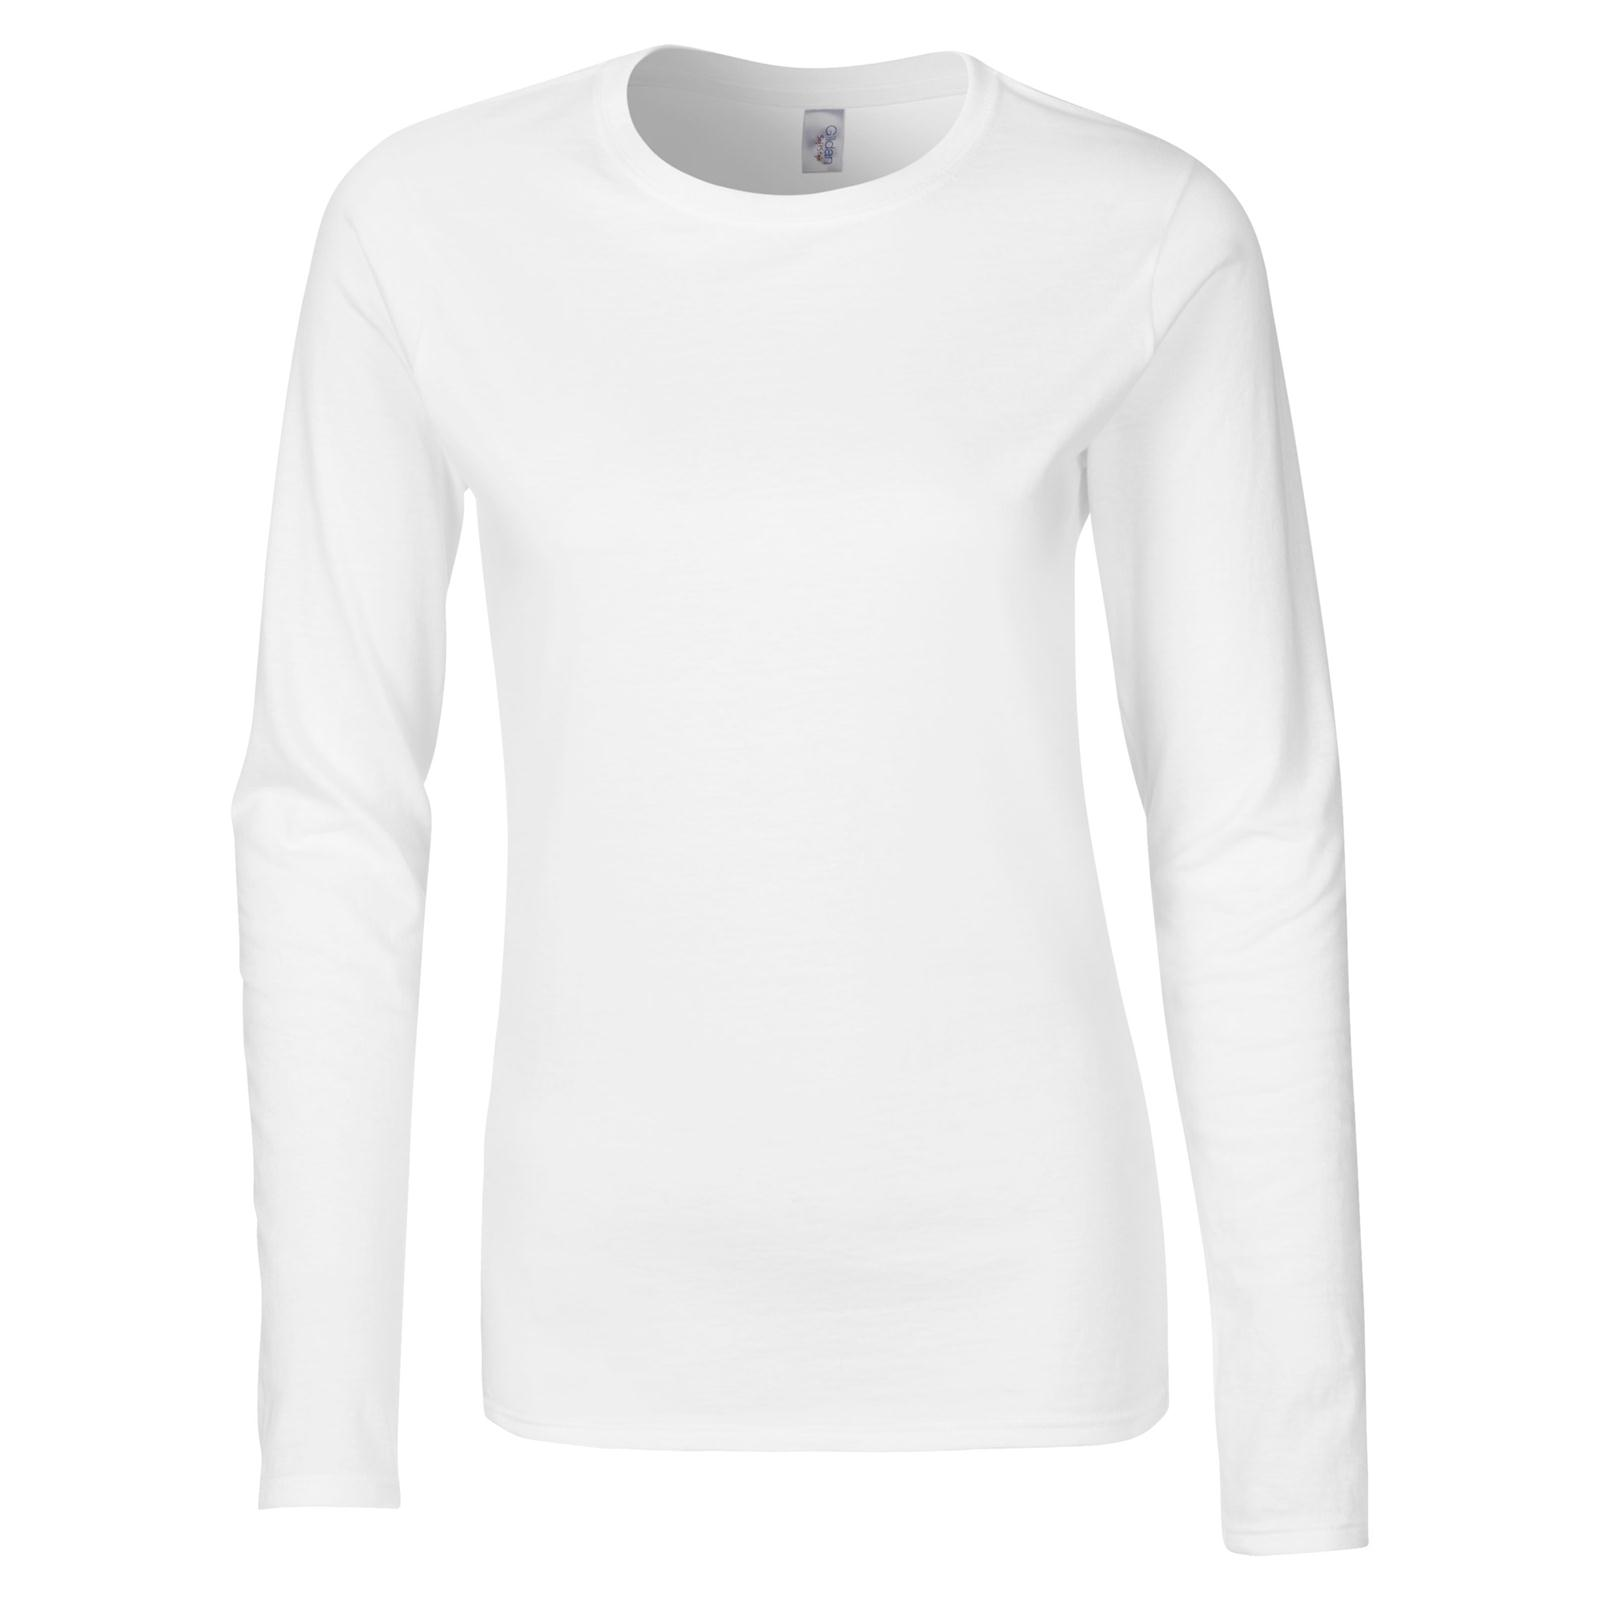 New Gildan Womens Ladies Soft Style Cotton Long Sleeve T